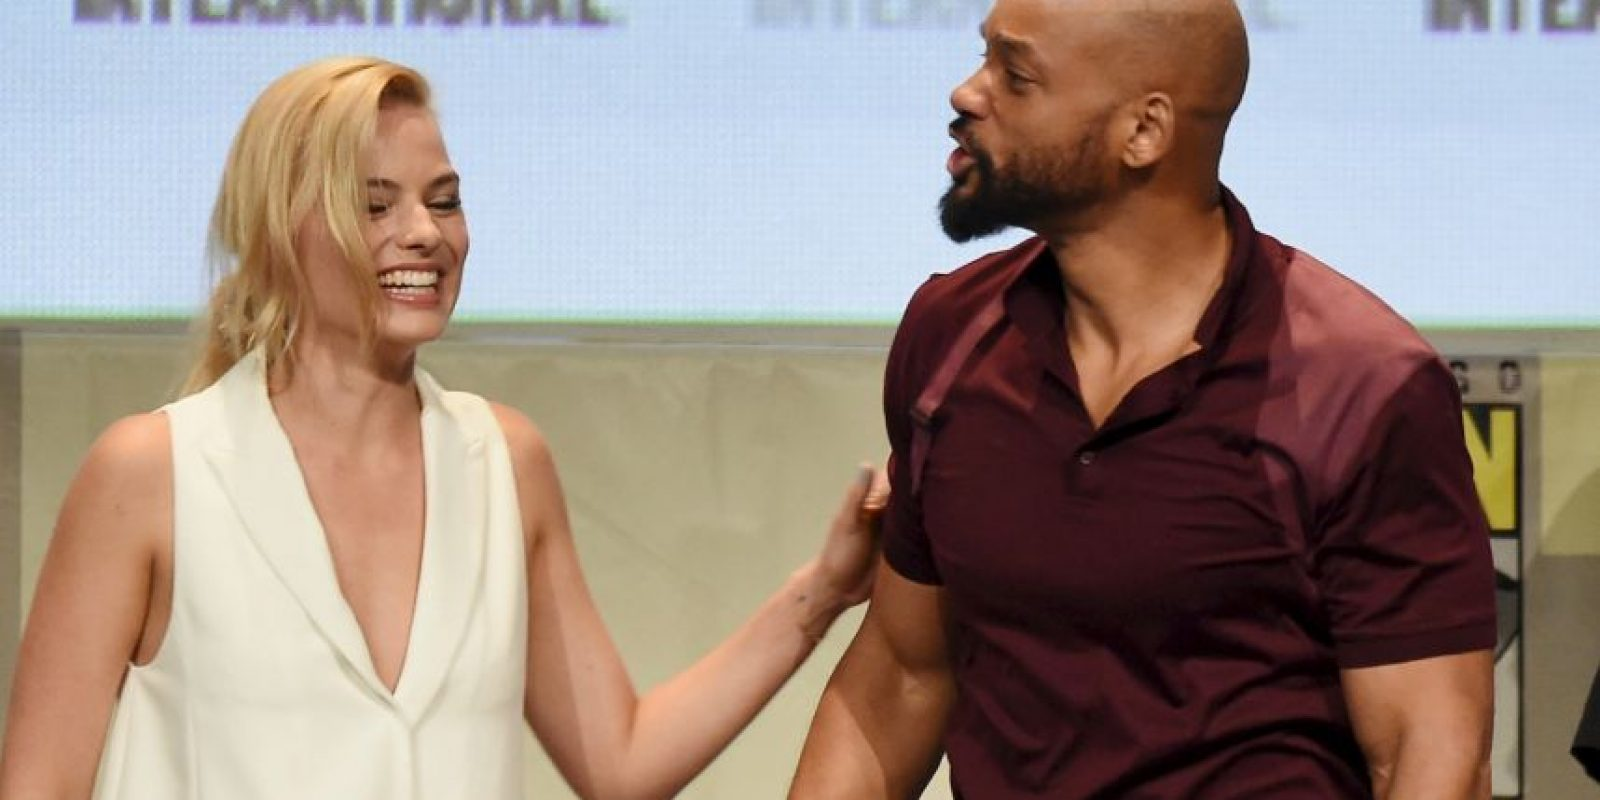 Además de que aseguraban un supuesto romance entre Margot Robbie y Smith Foto: Getty Images